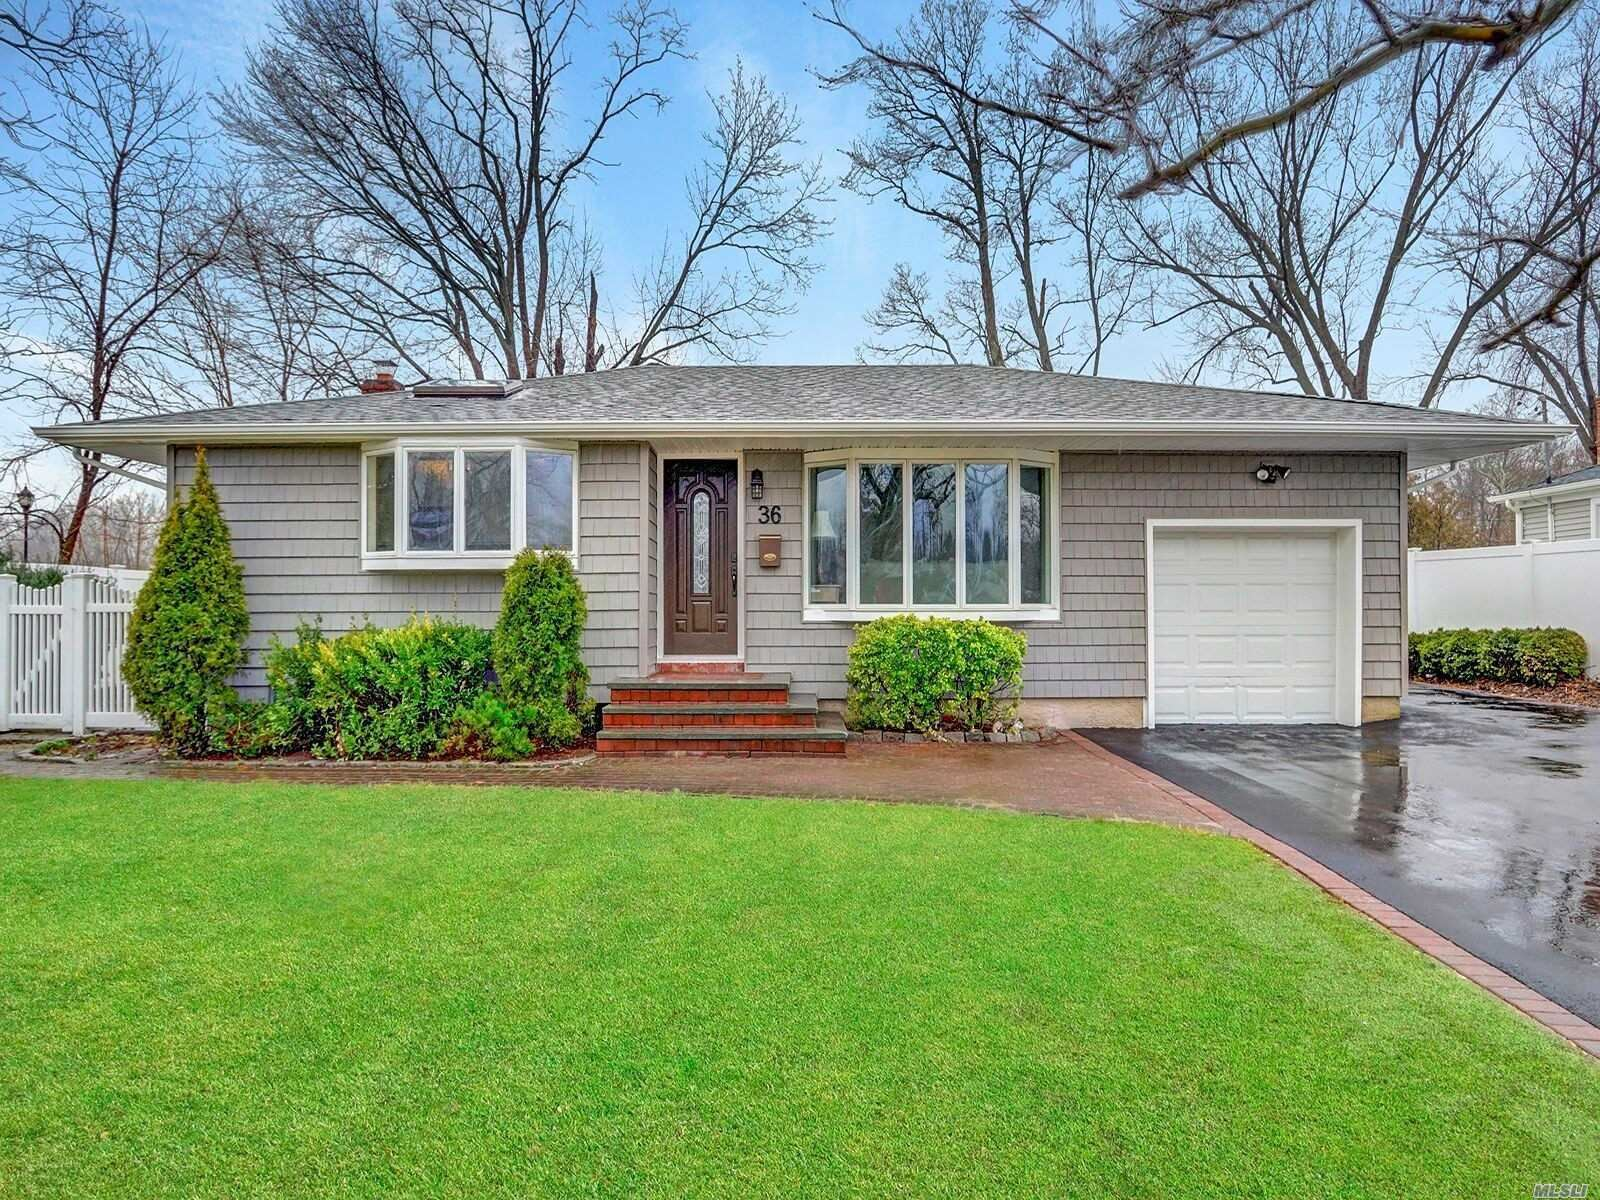 36 Marie Crescent, Commack, NY 11725 - MLS#: 3188450